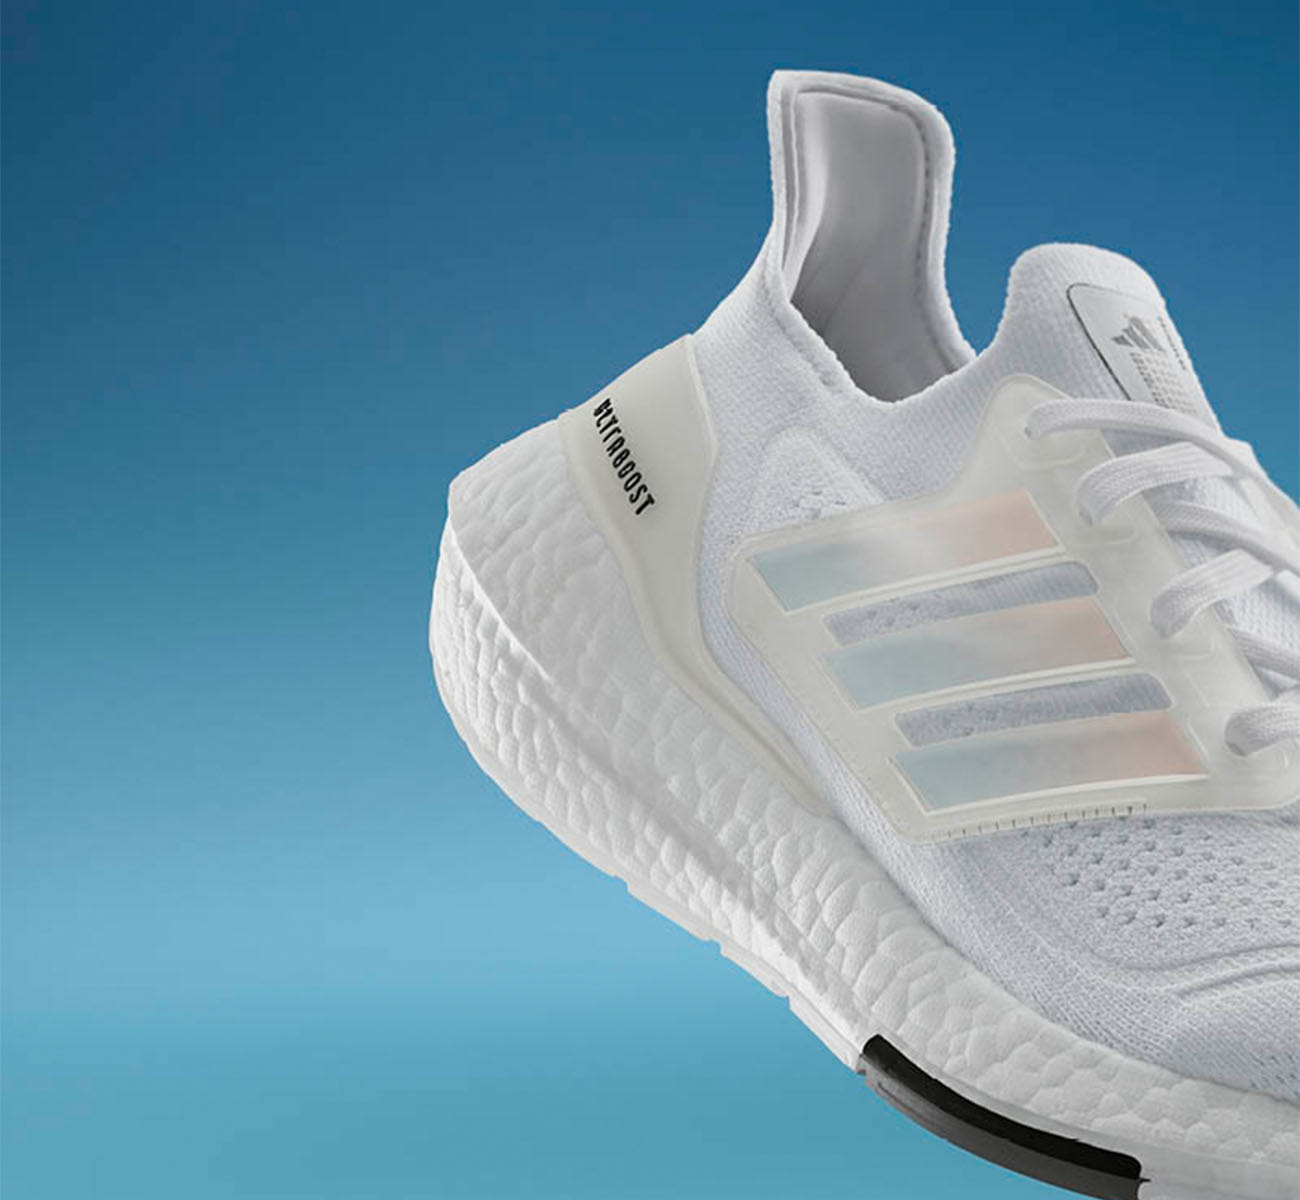 SEO-Are-Ultraboosts-Running-Shoes-body-image-3